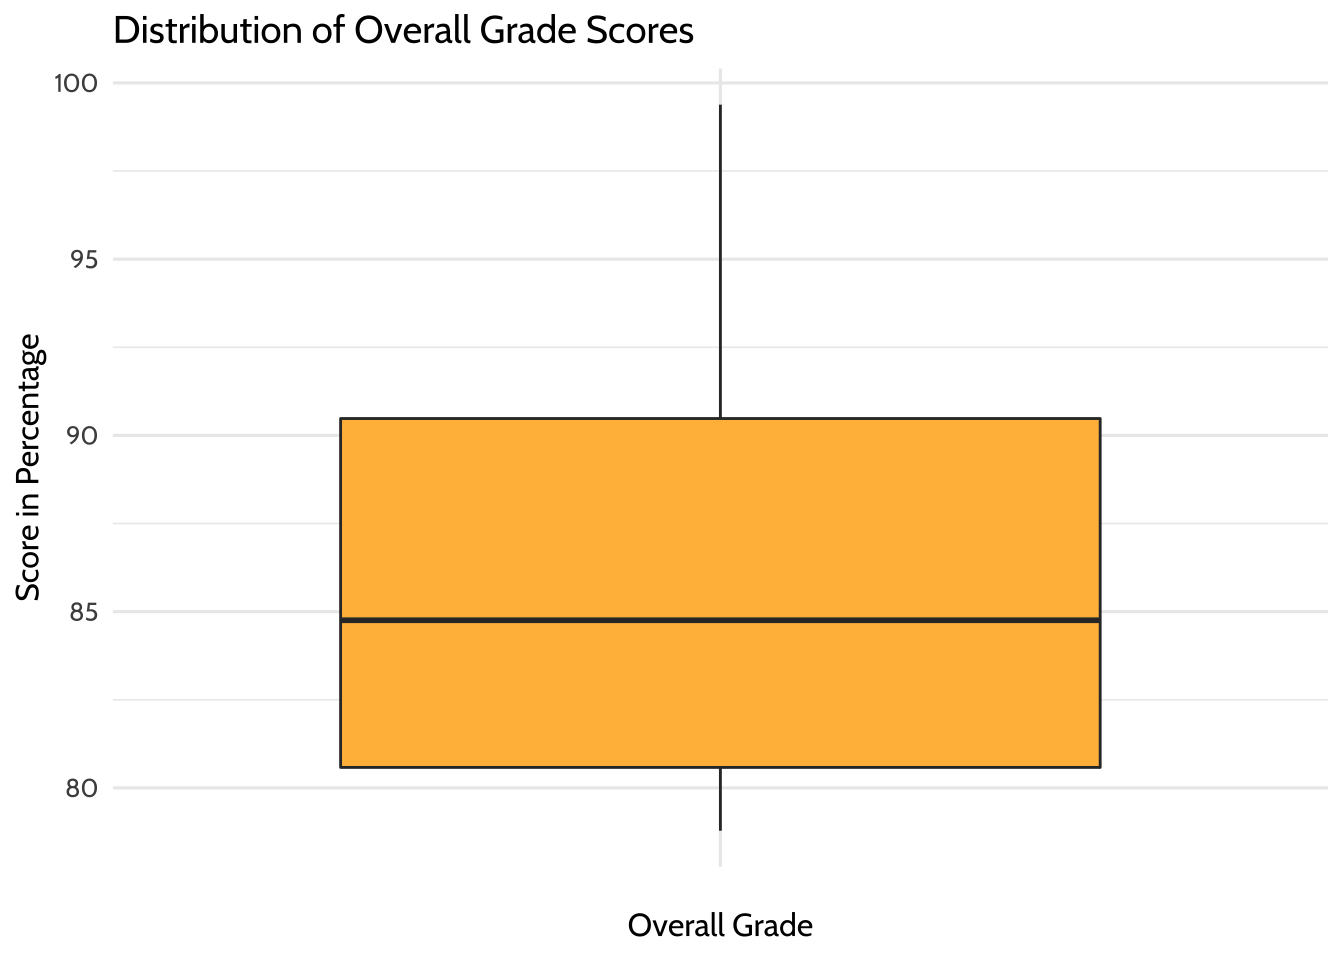 Distribution of Overall Grade Scores